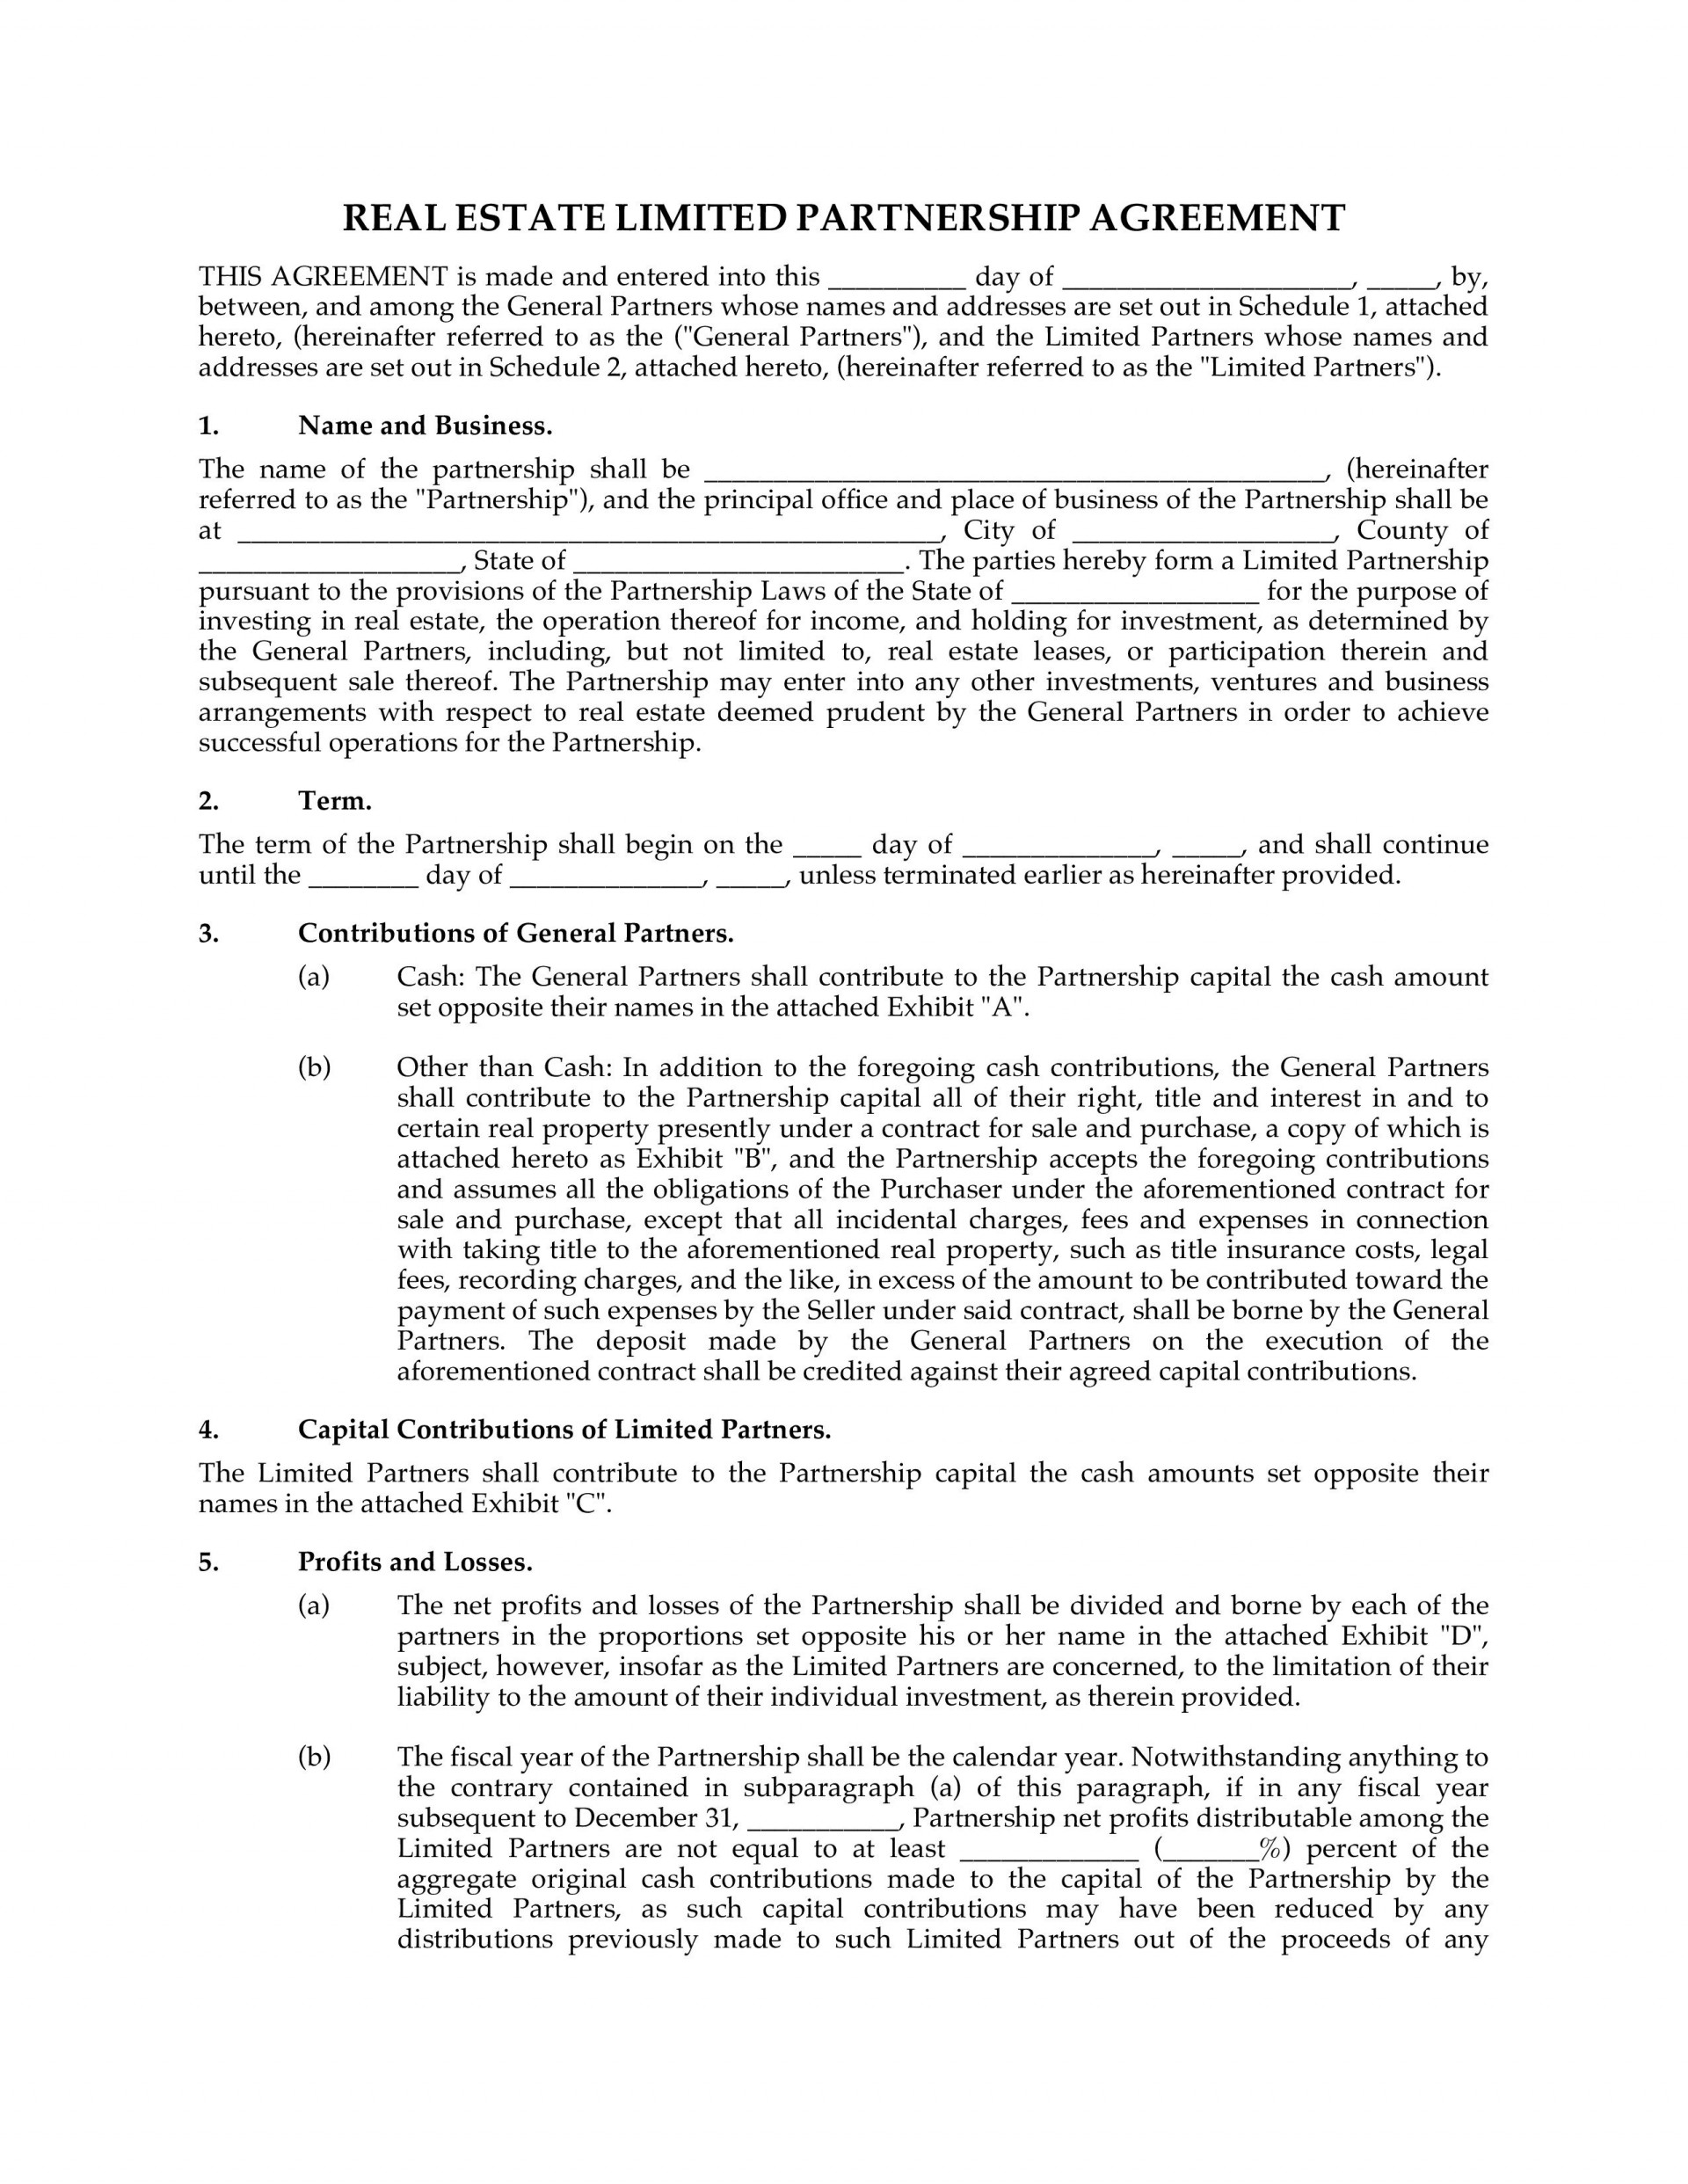 002 Unbelievable Real Estate Partnership Agreement Template Highest Clarity  Team Investment1920